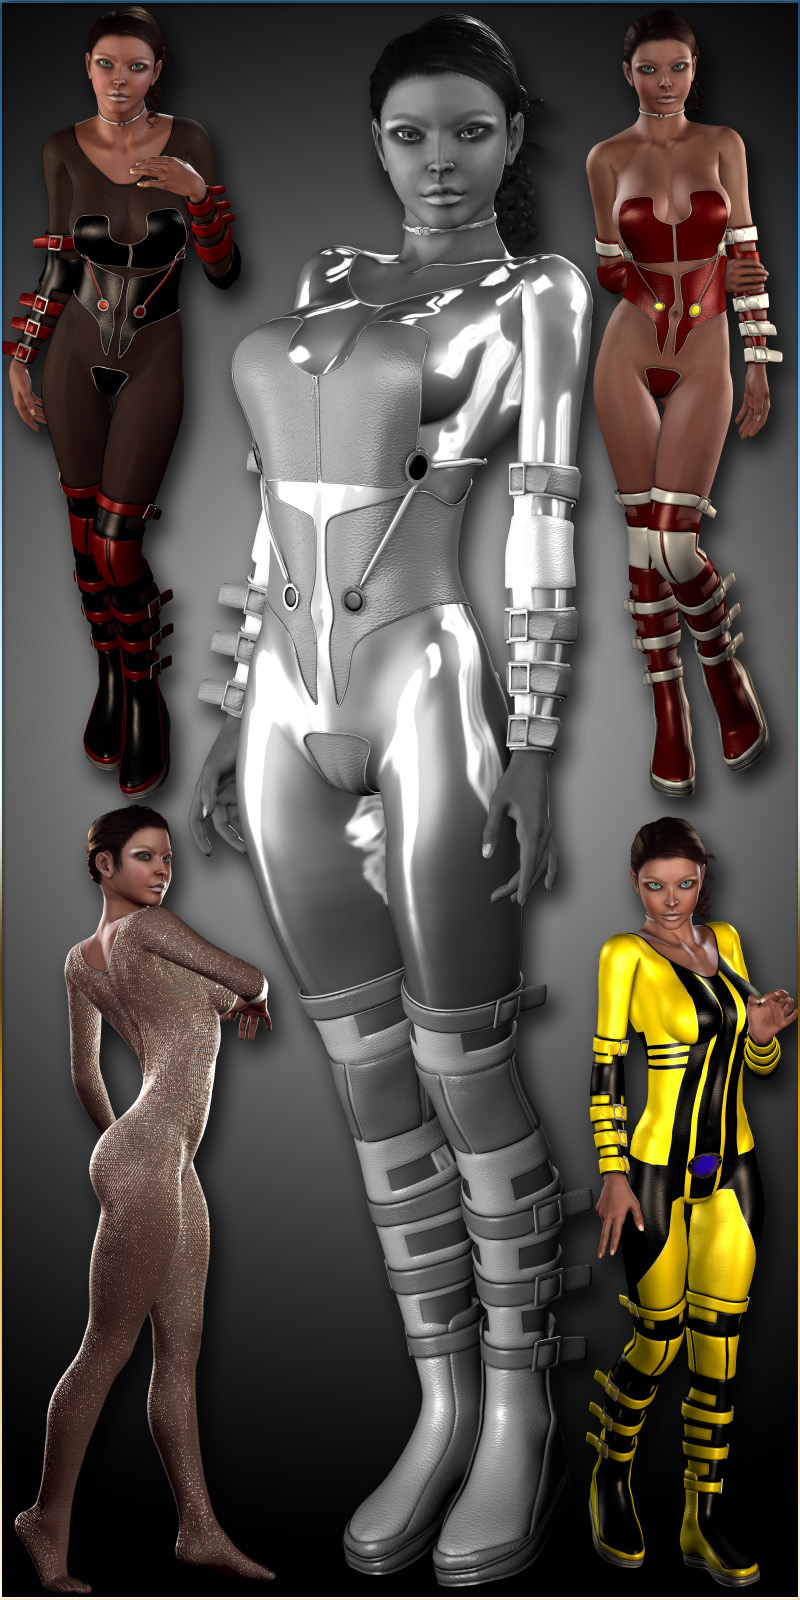 6a8136faa4a Jasmina s BodySuit-BodyStocking for V4 (Daz Studio 3 and Poser) 3D ...